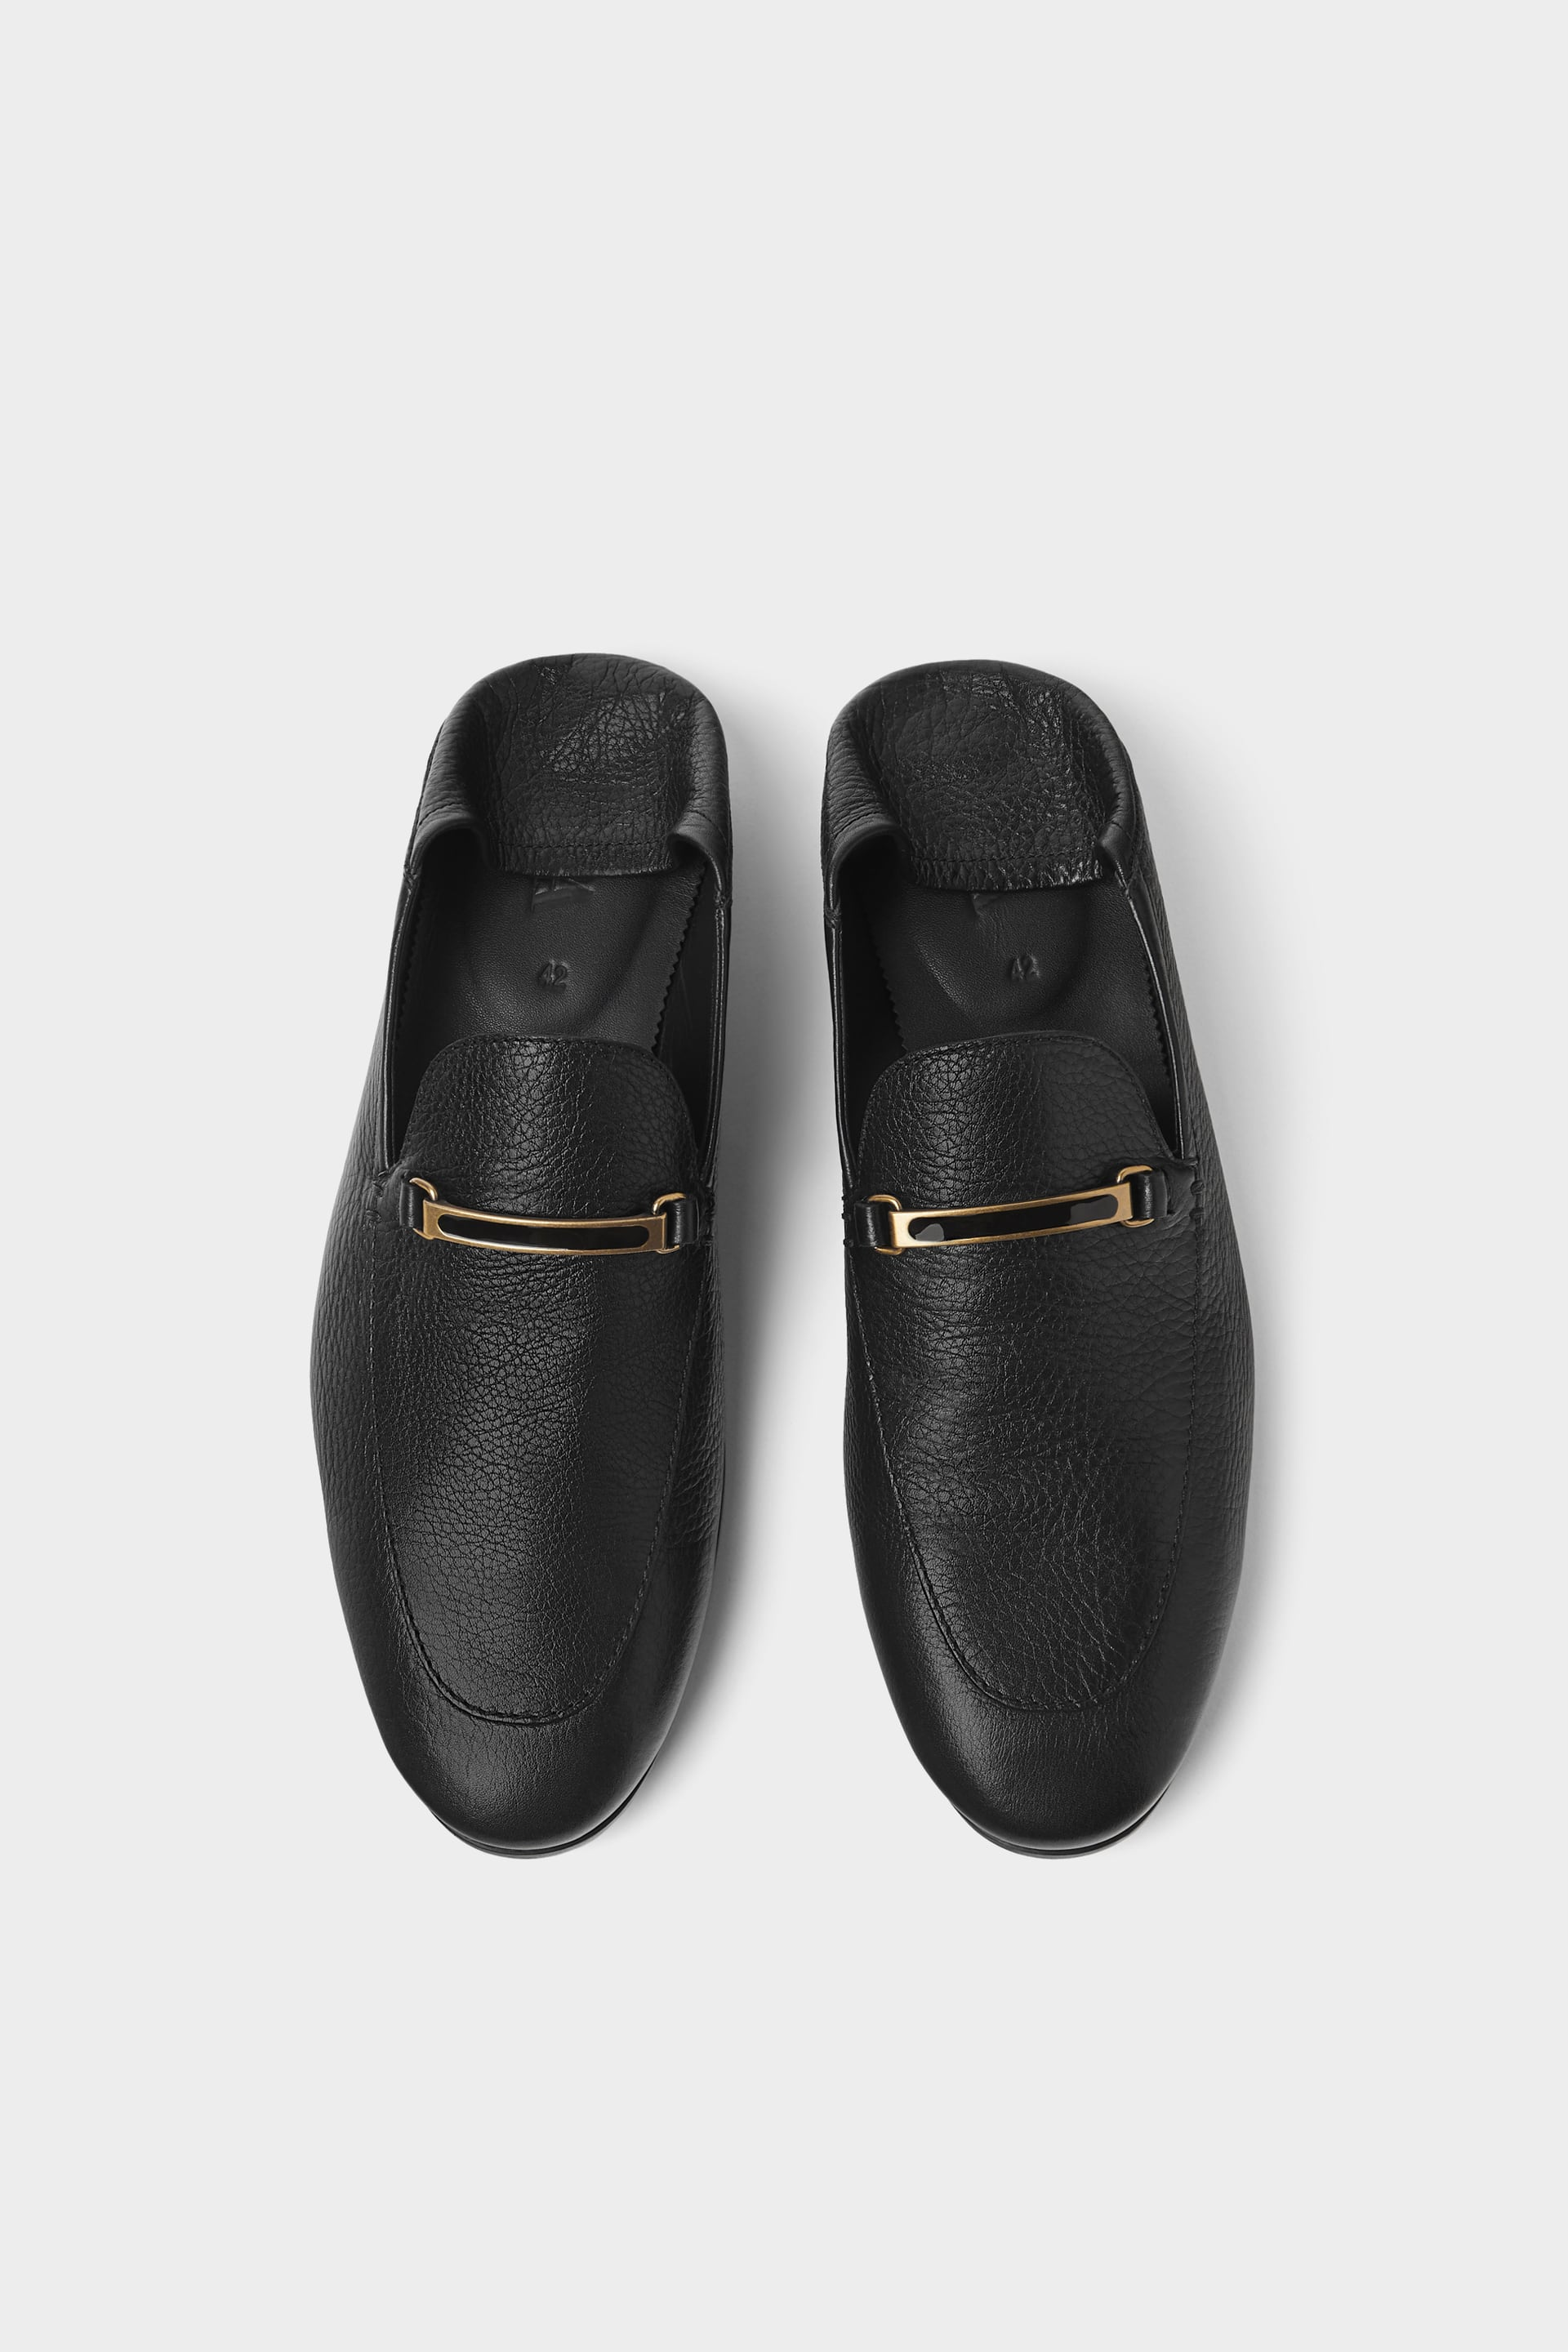 Zara loafers - £69.99 - Zara continues to do what it does best - be inspired by the catwalk and brings those trends to the high street